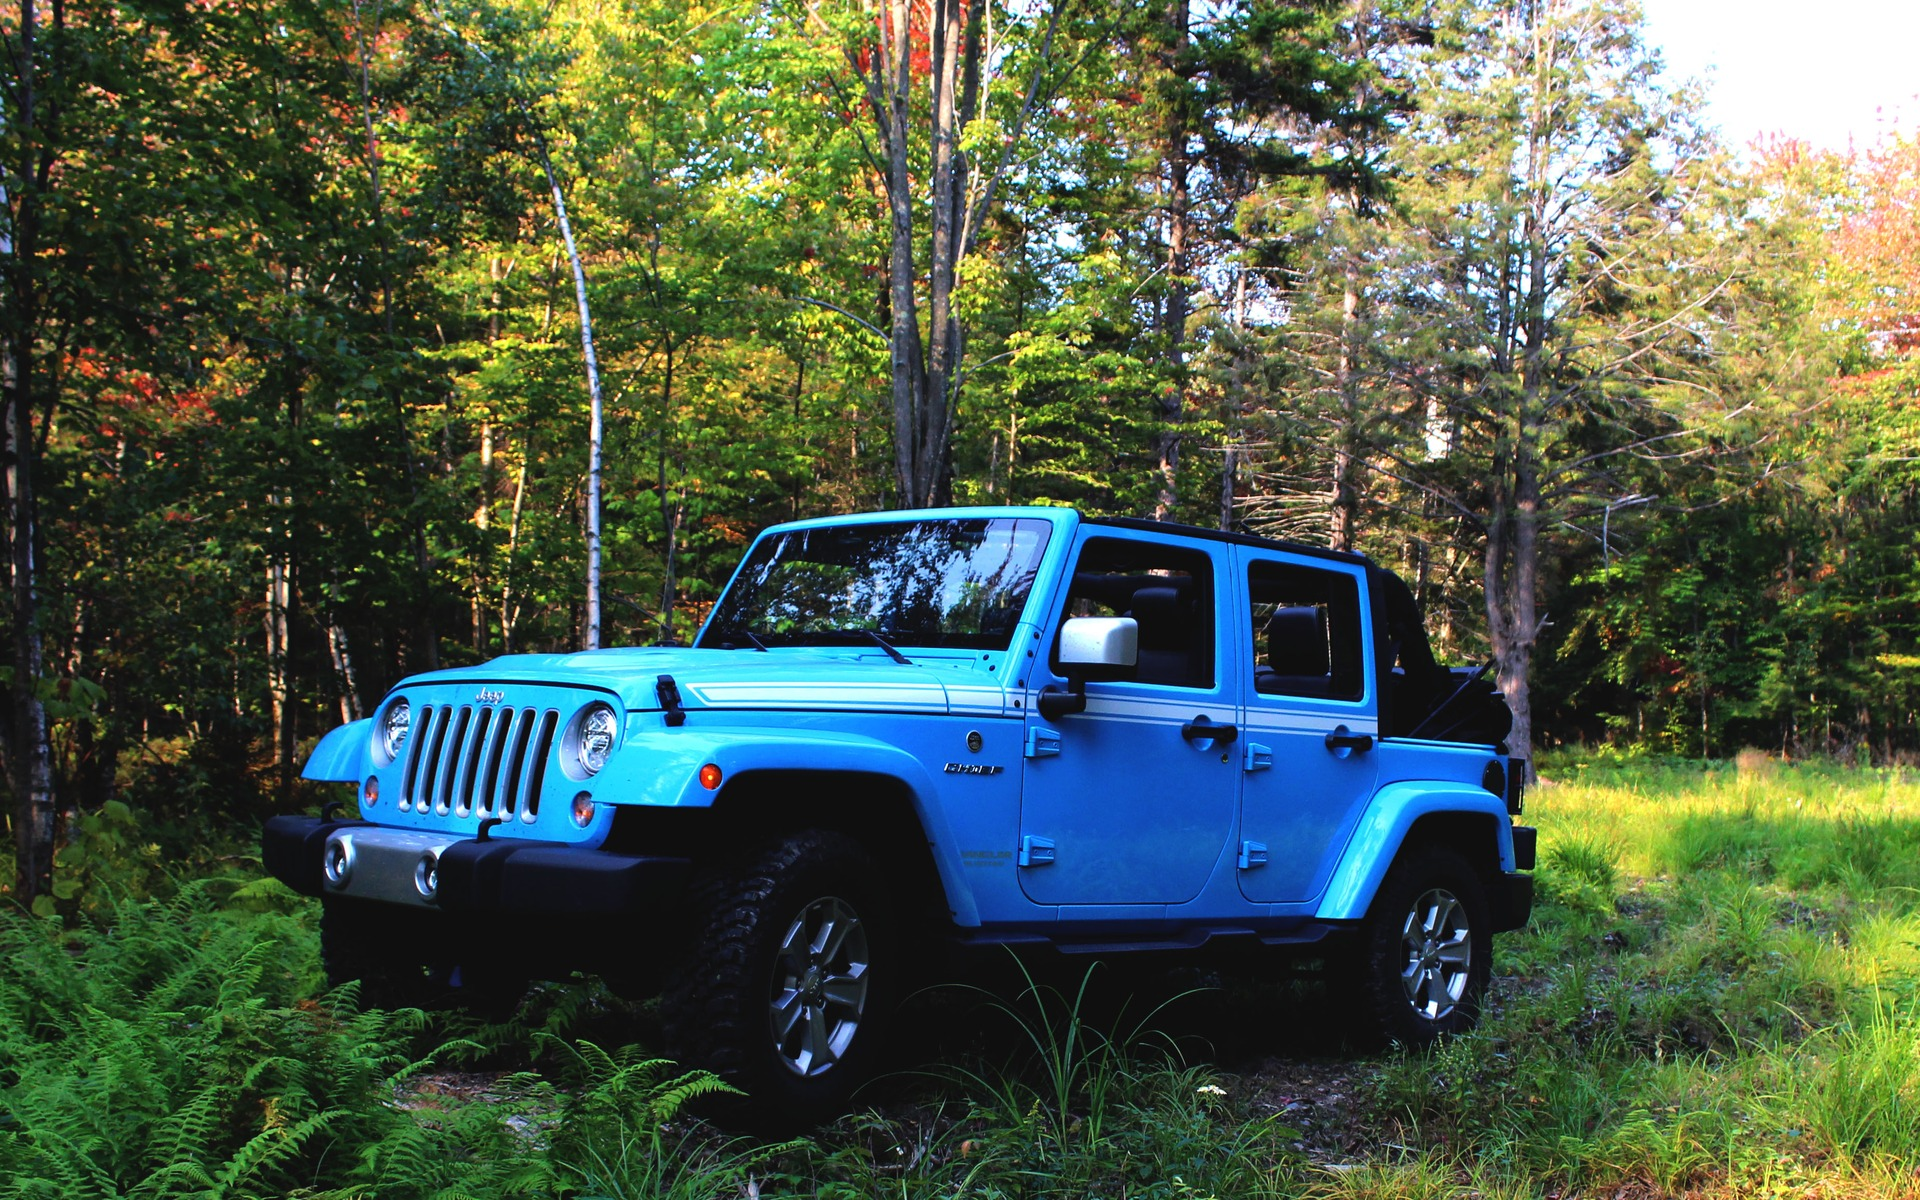 2017 Jeep Wrangler Chief Edition: Saying Goodbye to the JK with Style